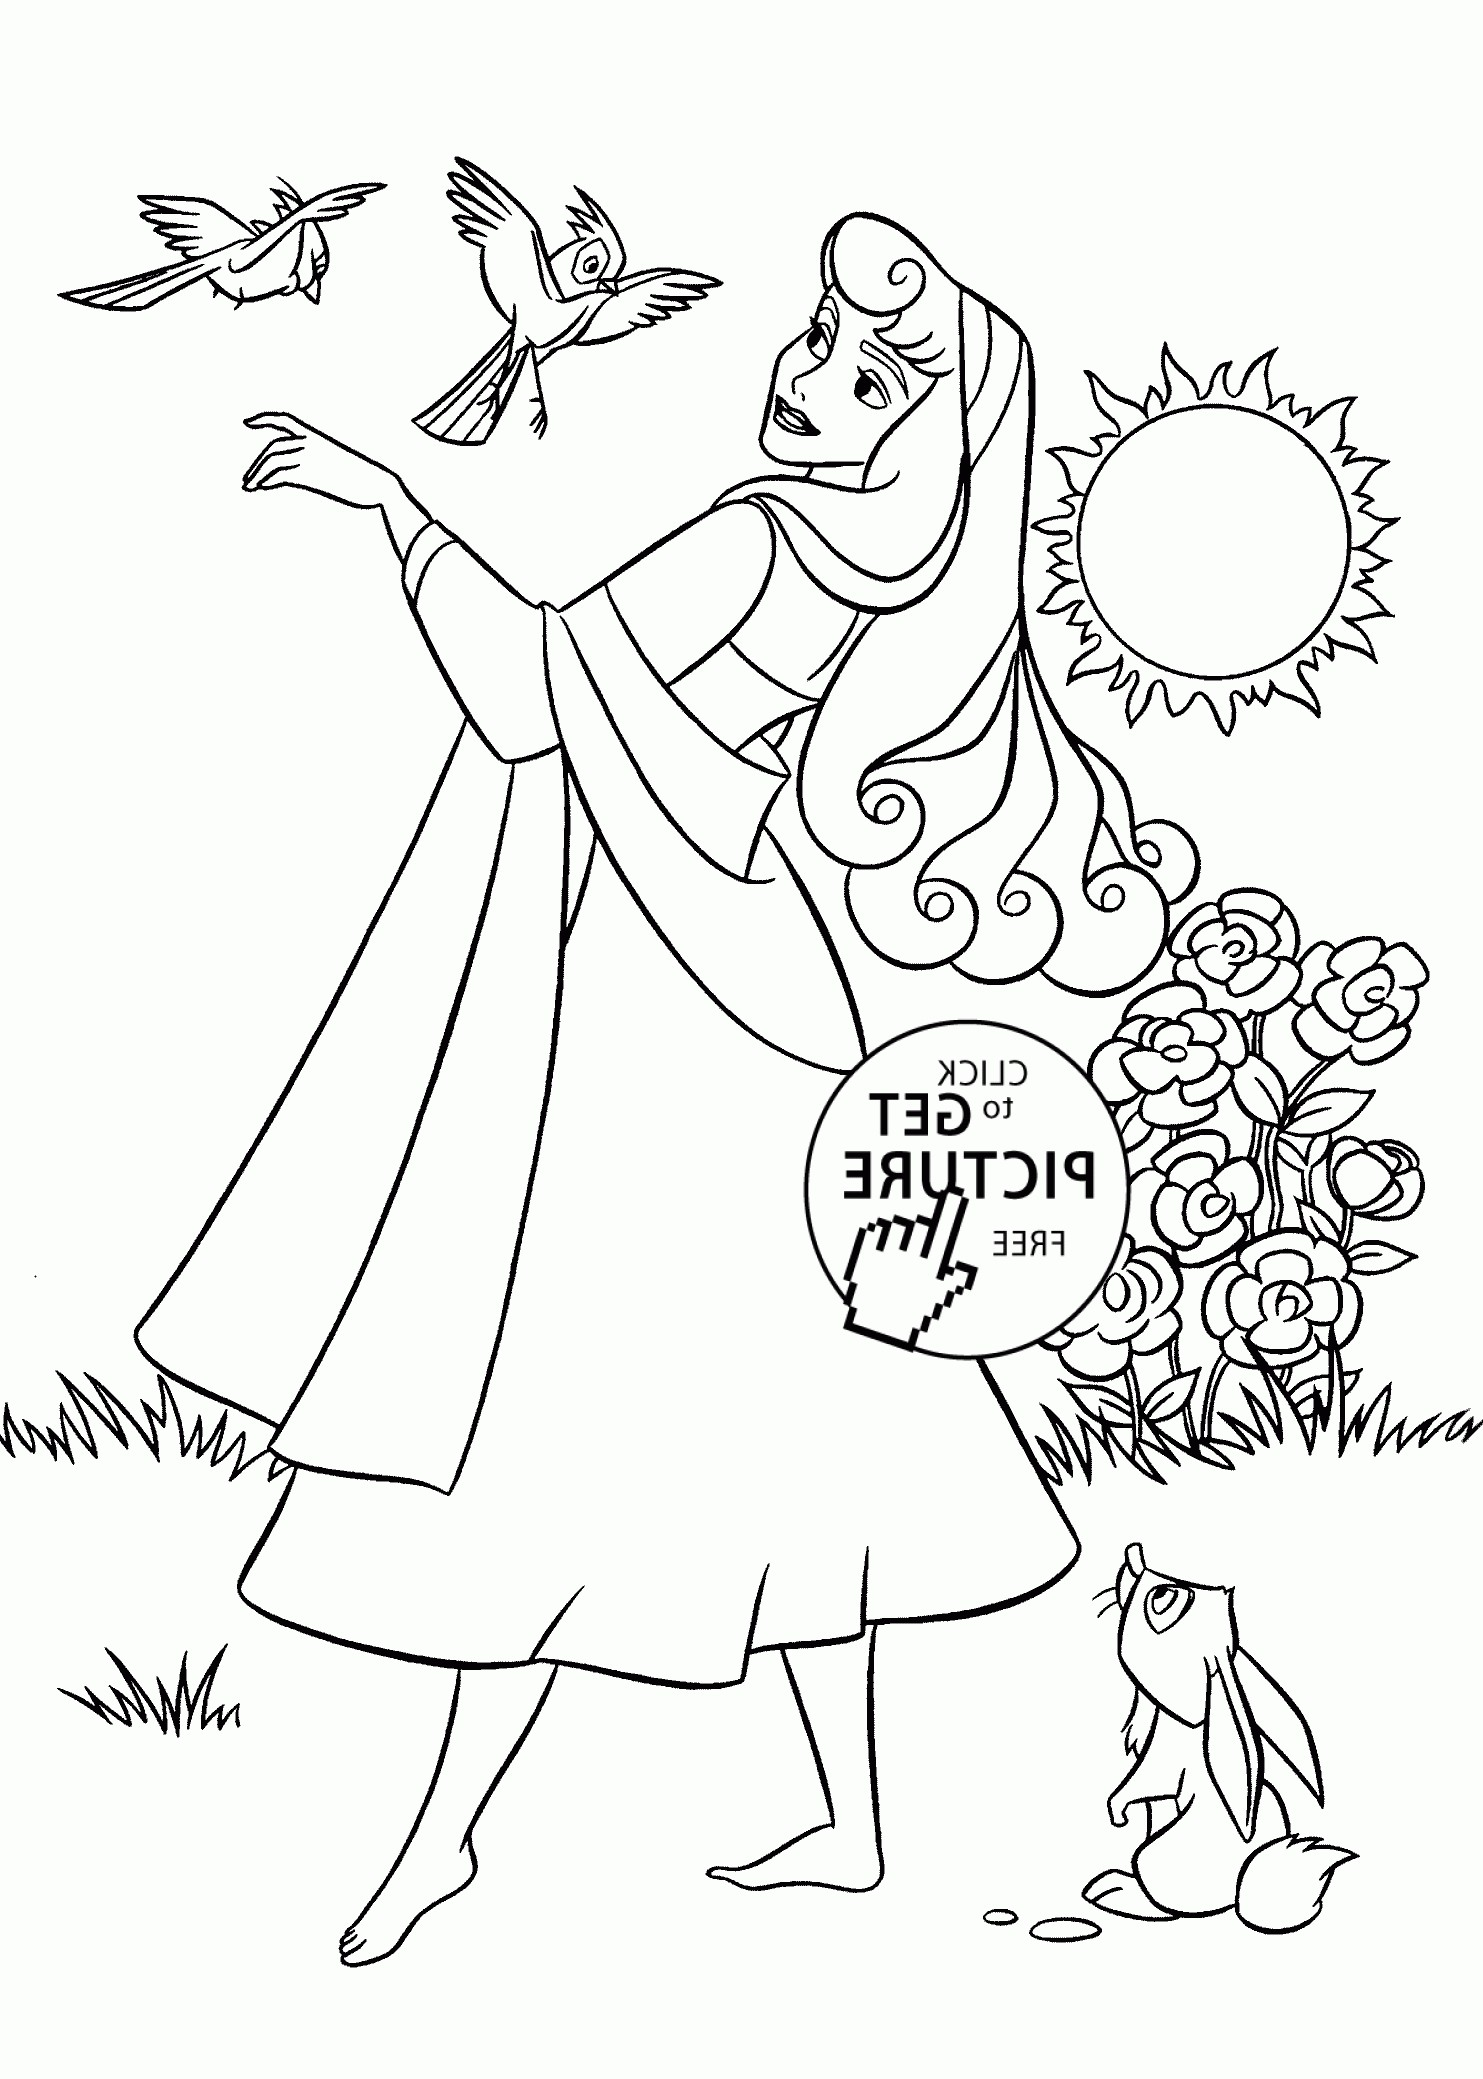 1483x2079 Sleeping Beauty Coloring Pages For Kids New Nature Black And White